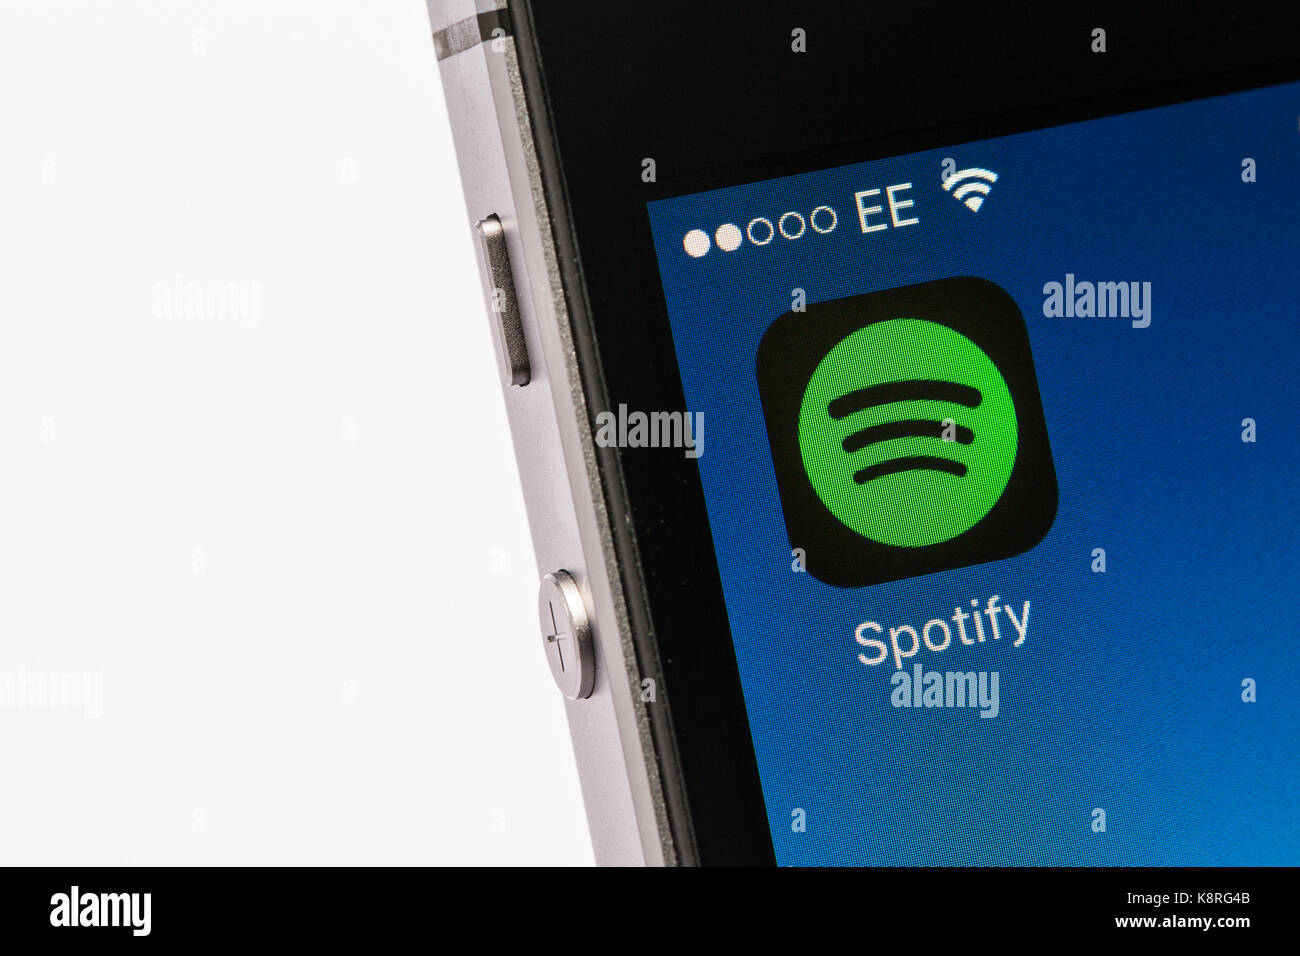 Spotify App on an iPhone mobile phone - Stock Image